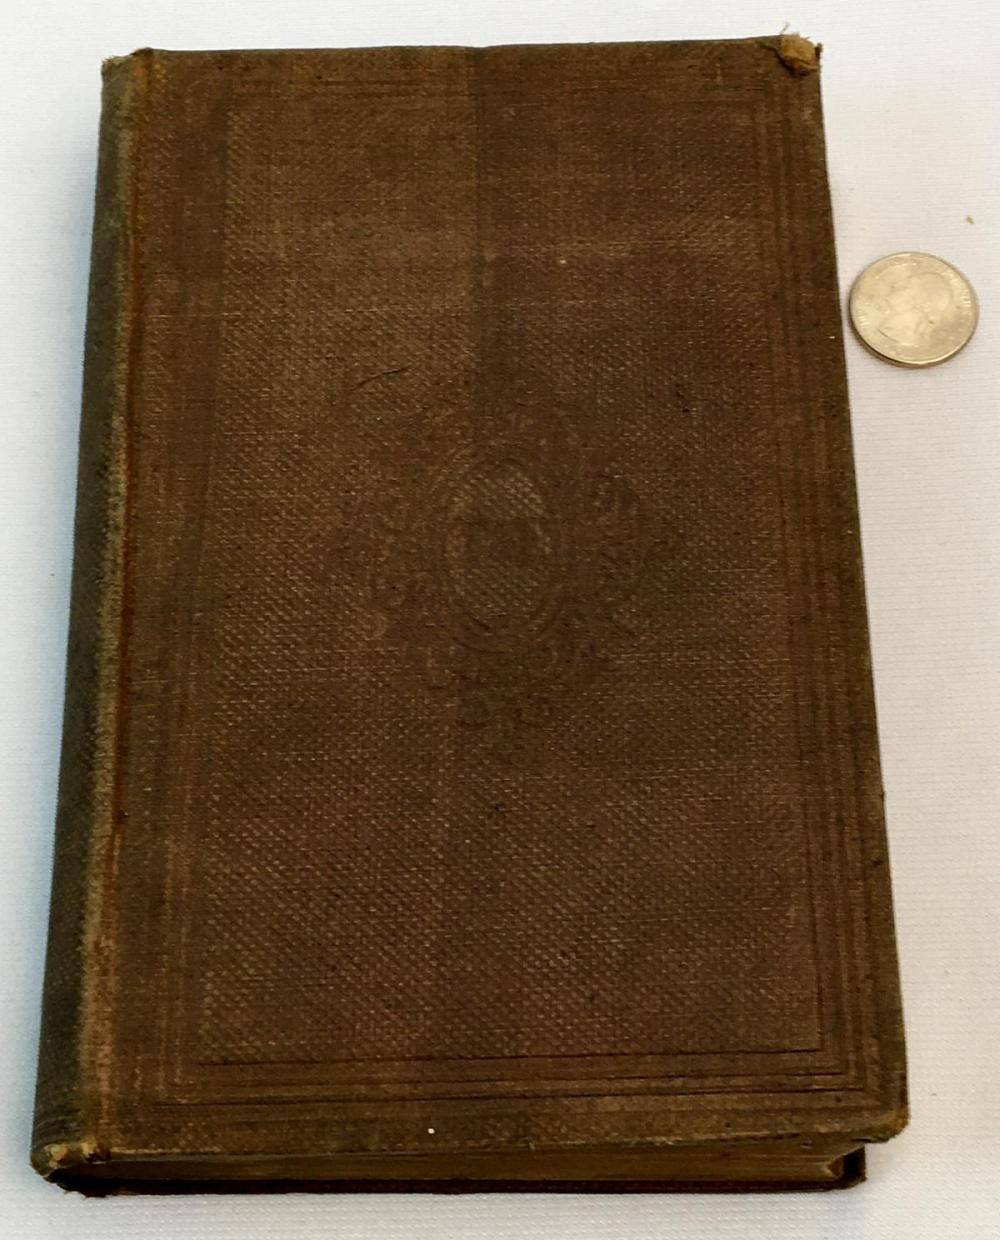 1861 Currents and Counter-Currents in Medical Science with Other Addresses and Essay by Oliver Wendell Holmes FIRST EDITION